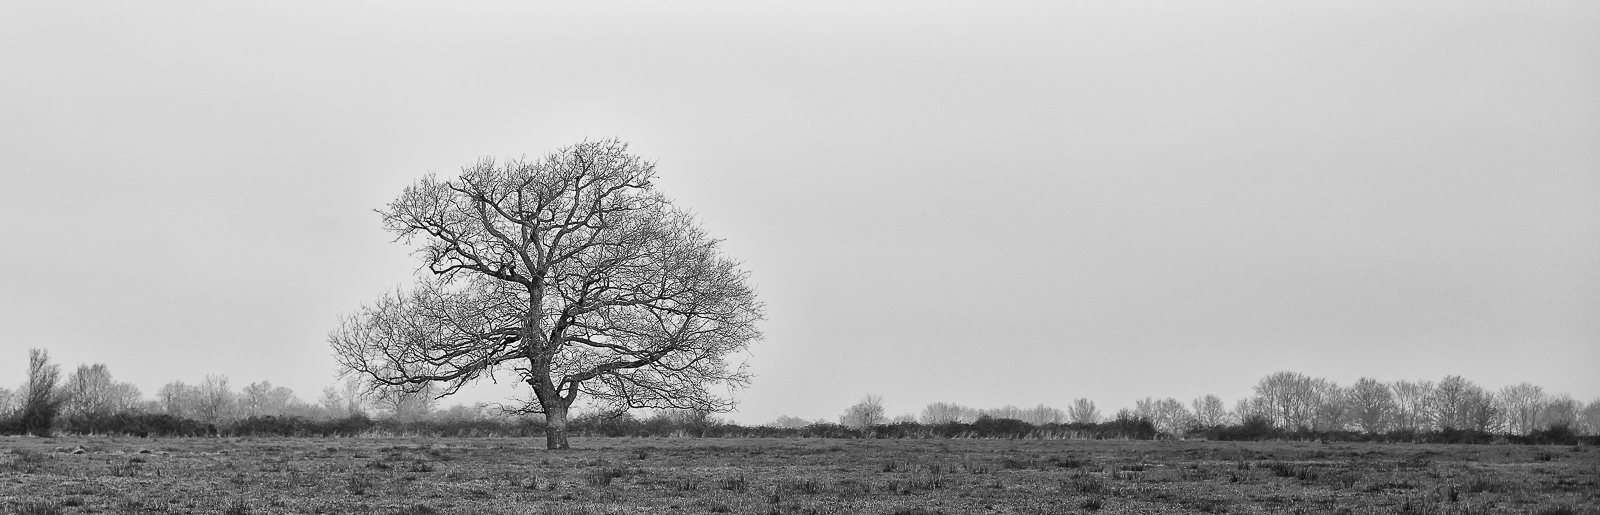 Photos Arbre solitaire - Panoramique par recadrage - N&B